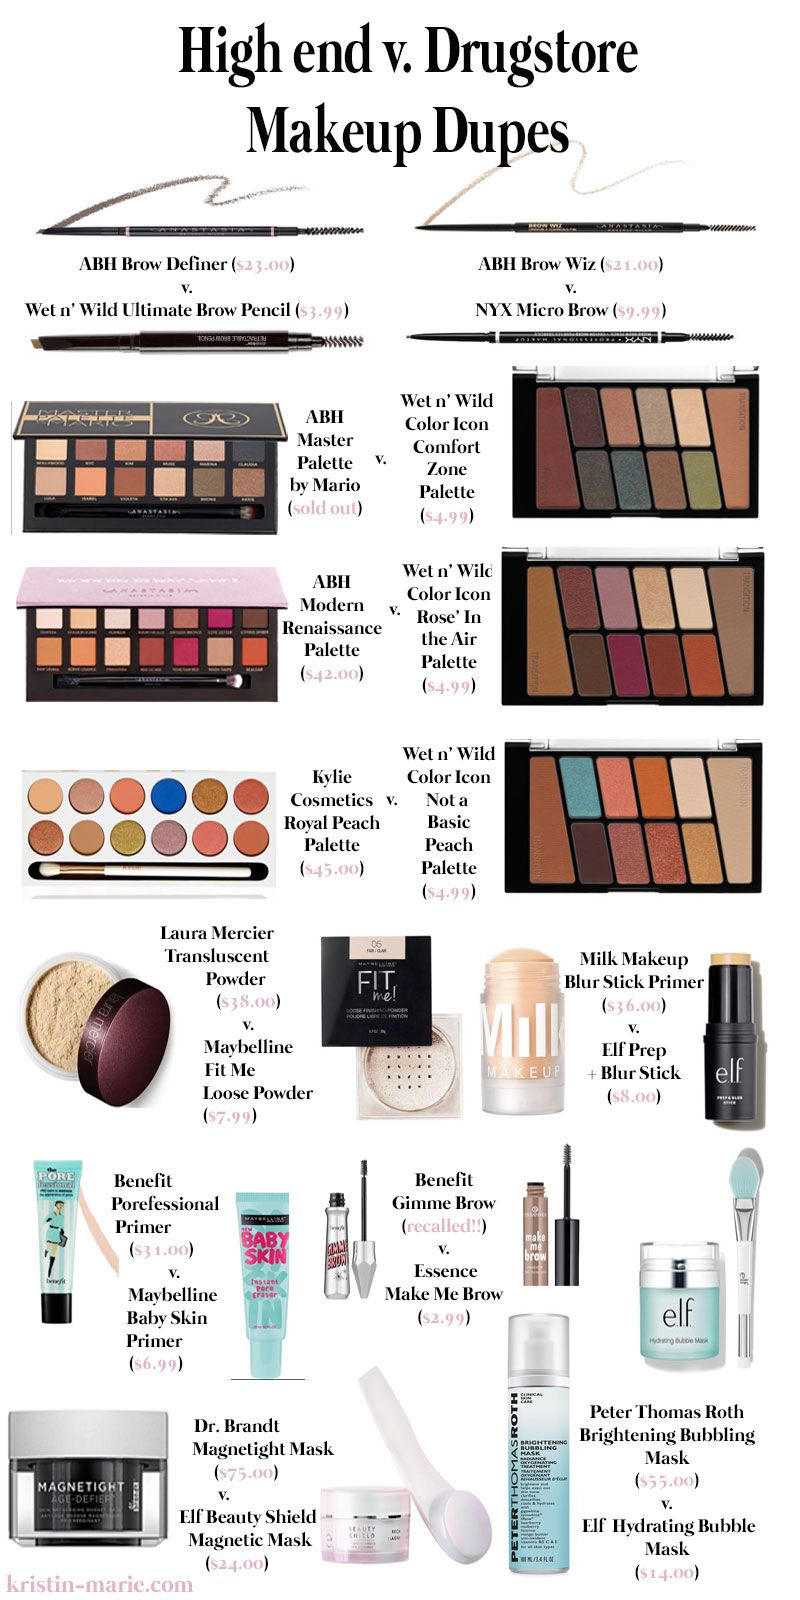 Account Suspended Drugstore Makeup Dupes Makeup Dupes Drugstore Makeup